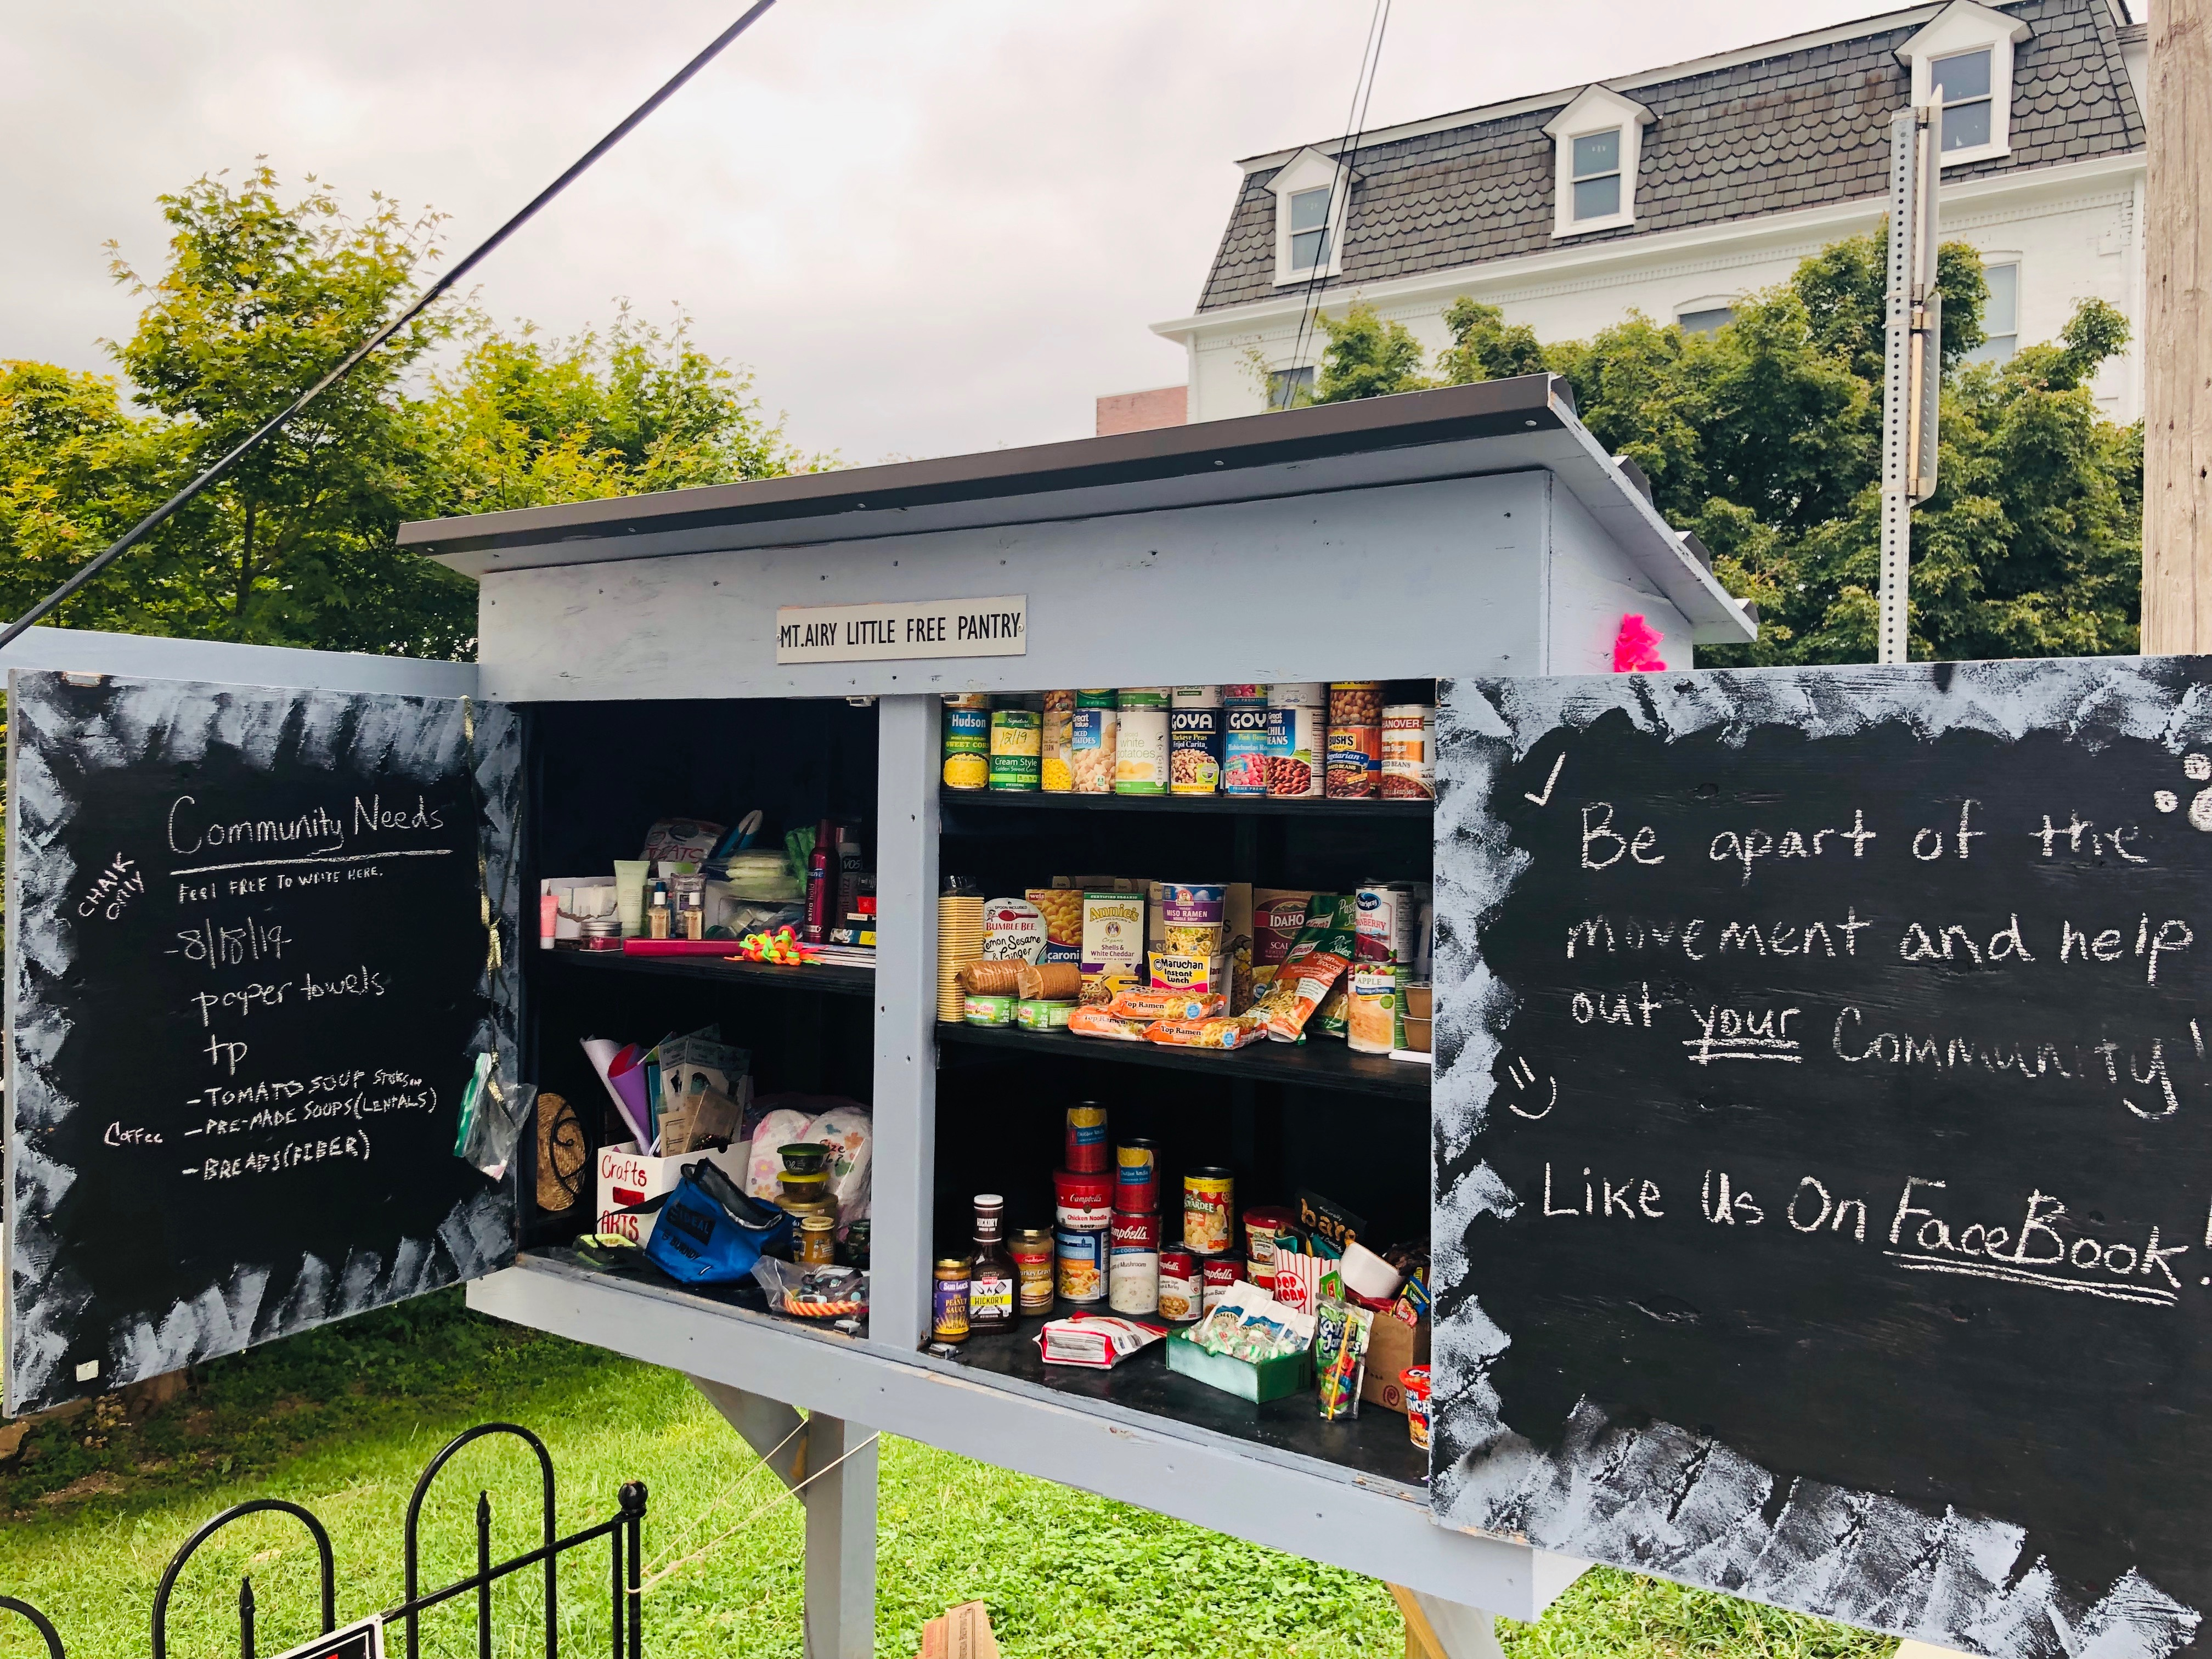 Mount Airy little free pantry Photo 1